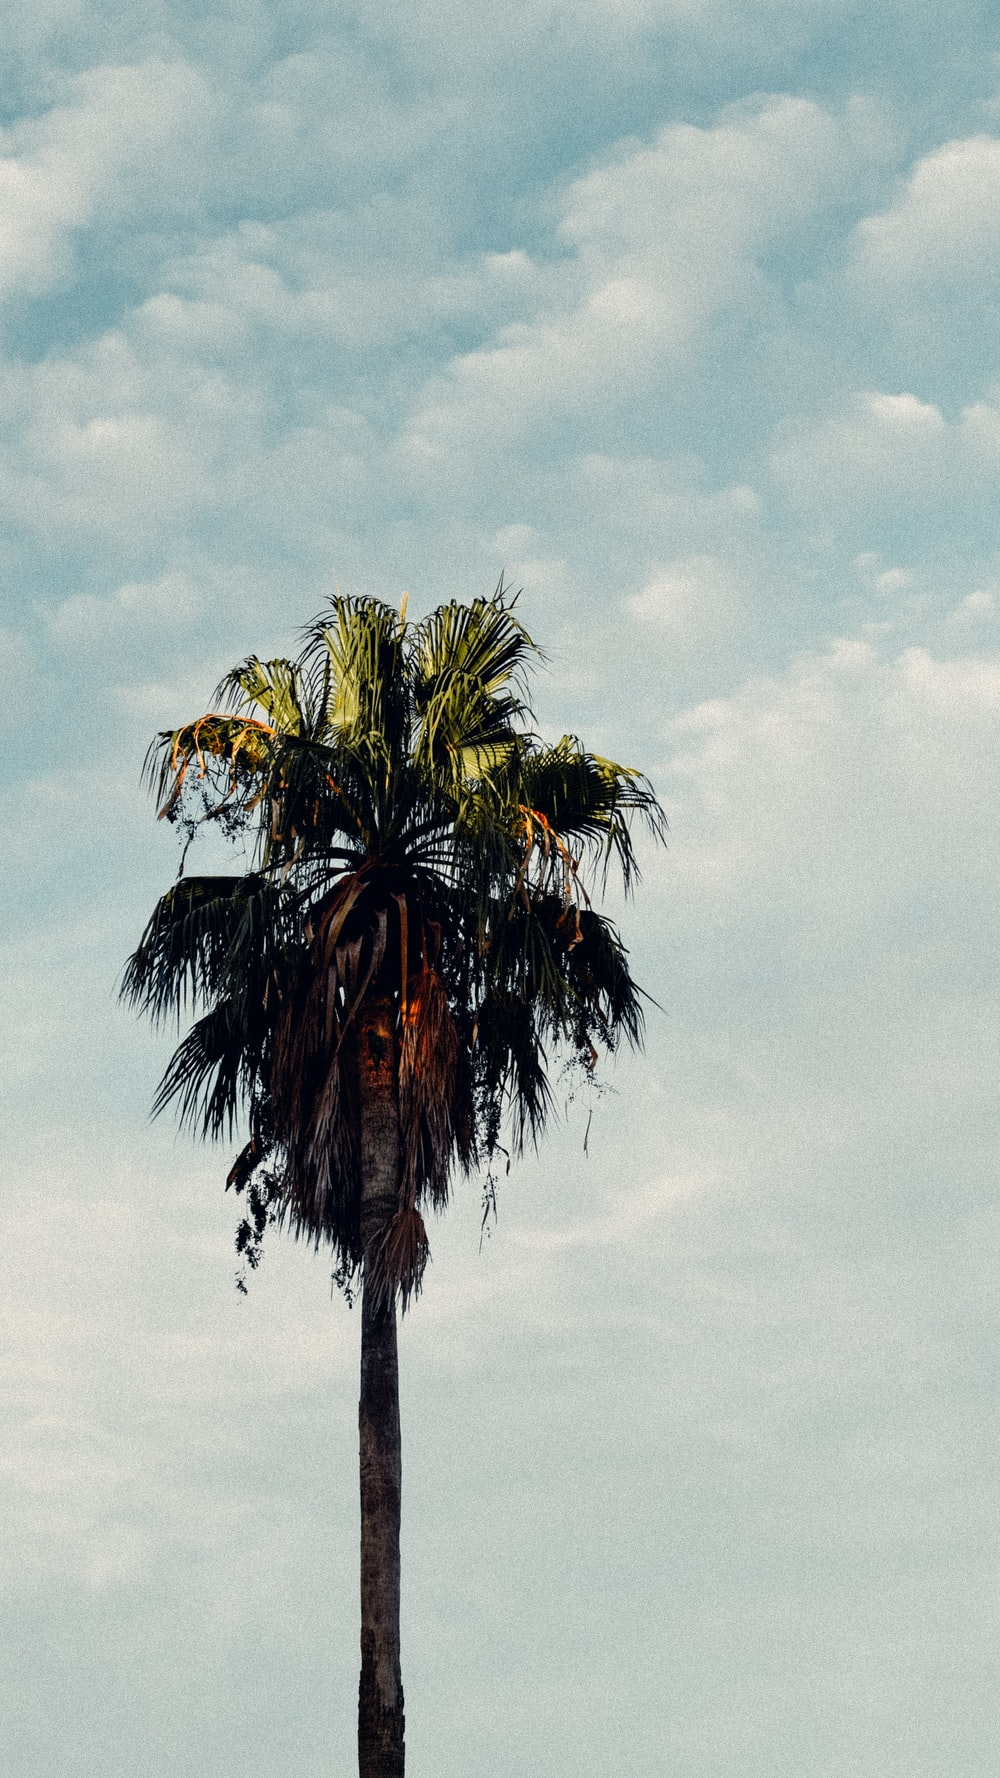 green palm tree under white clouds